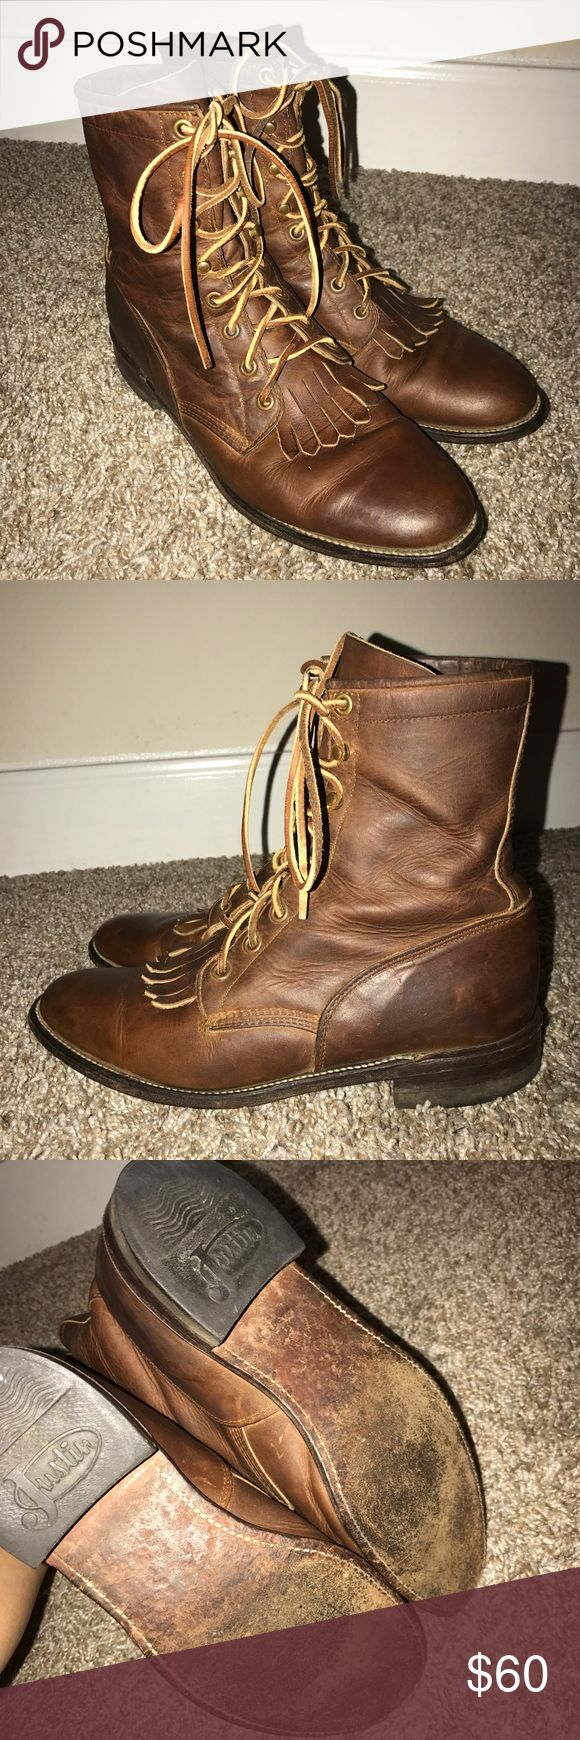 Justin Work Boot Lace Up Western Roper Kiltie Boot Pre-owned. Show wear on soles and insoles. All leather. Shows some scratches/marks from wear. Laces show wear. No holes or tears. Overall good condition. Justin Boots Shoes Lace Up Boots